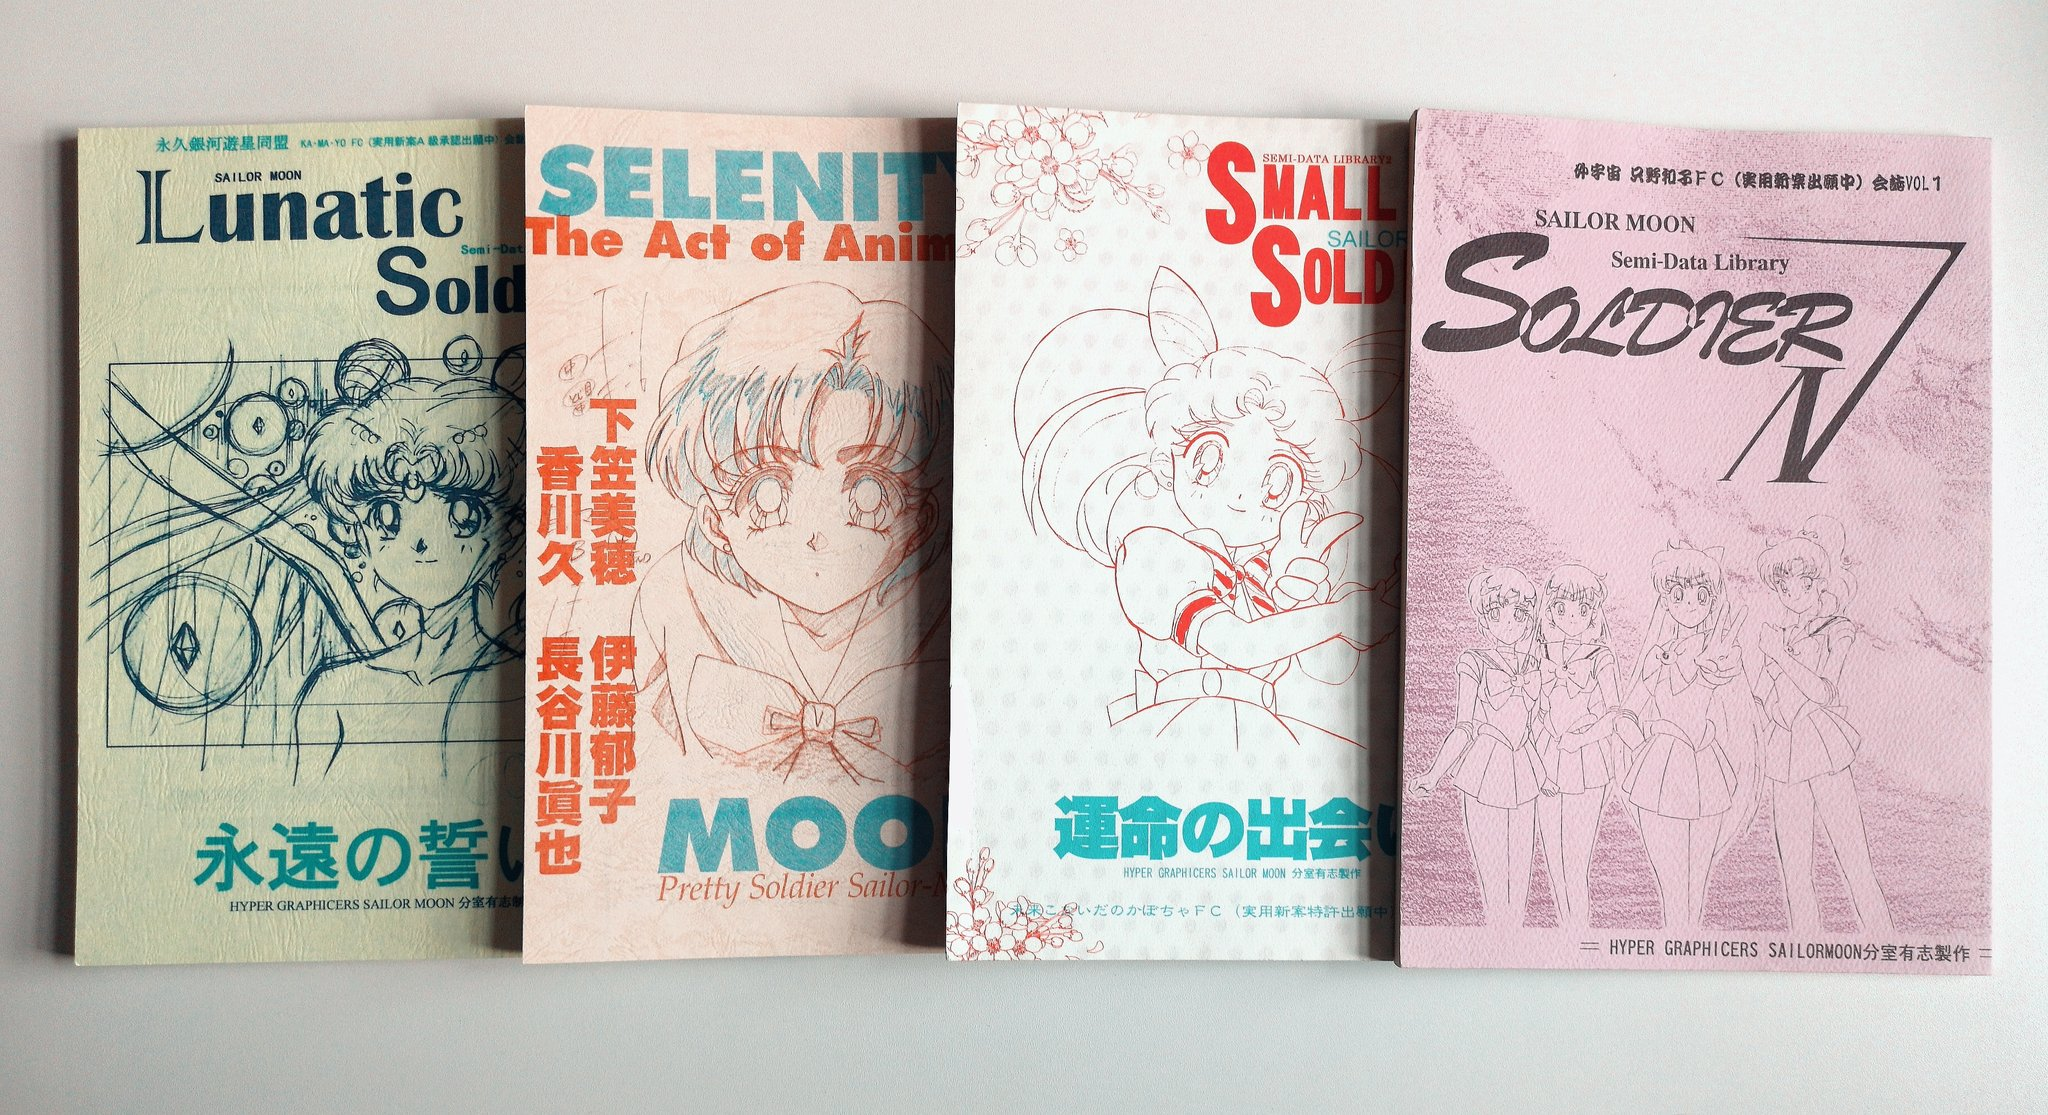 Sailor Moon Soldier IV: Hyper Graphicers Vol. 1